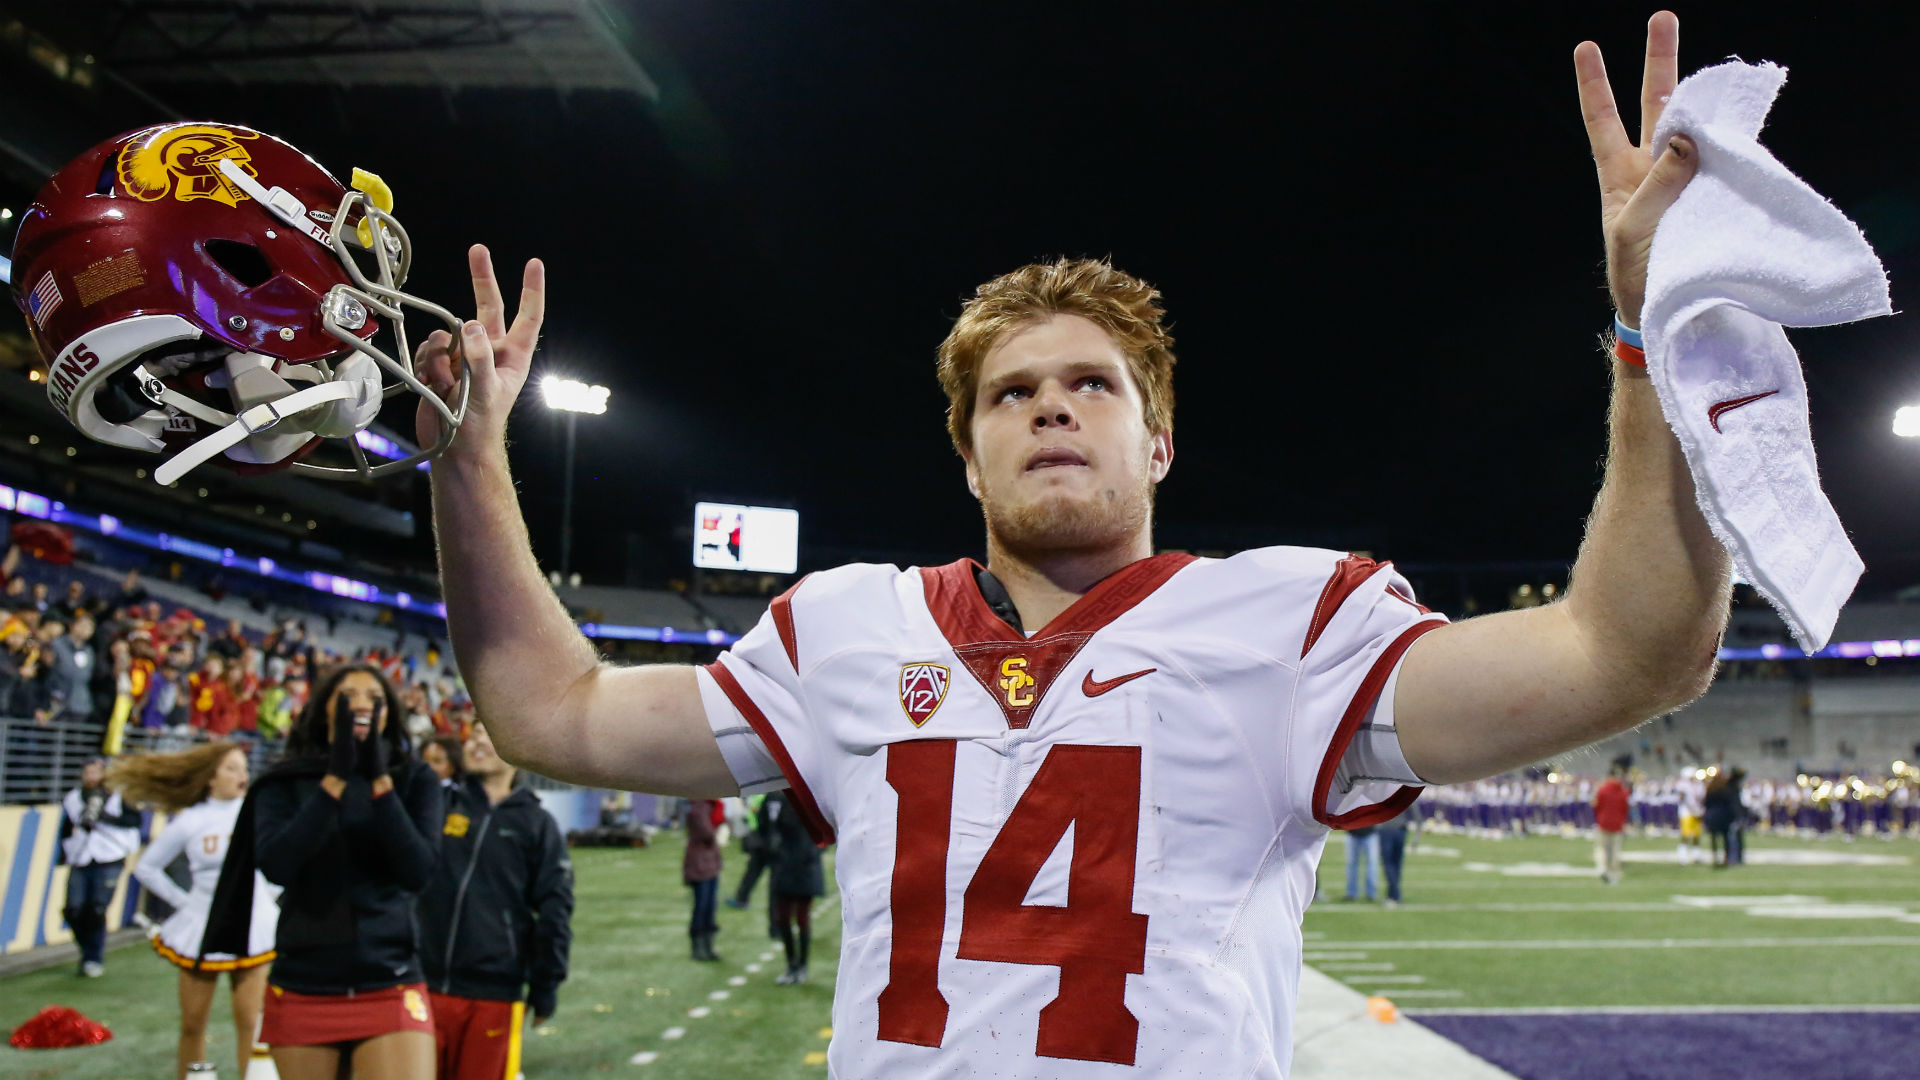 sam darnold biography height weight body stats and other facts